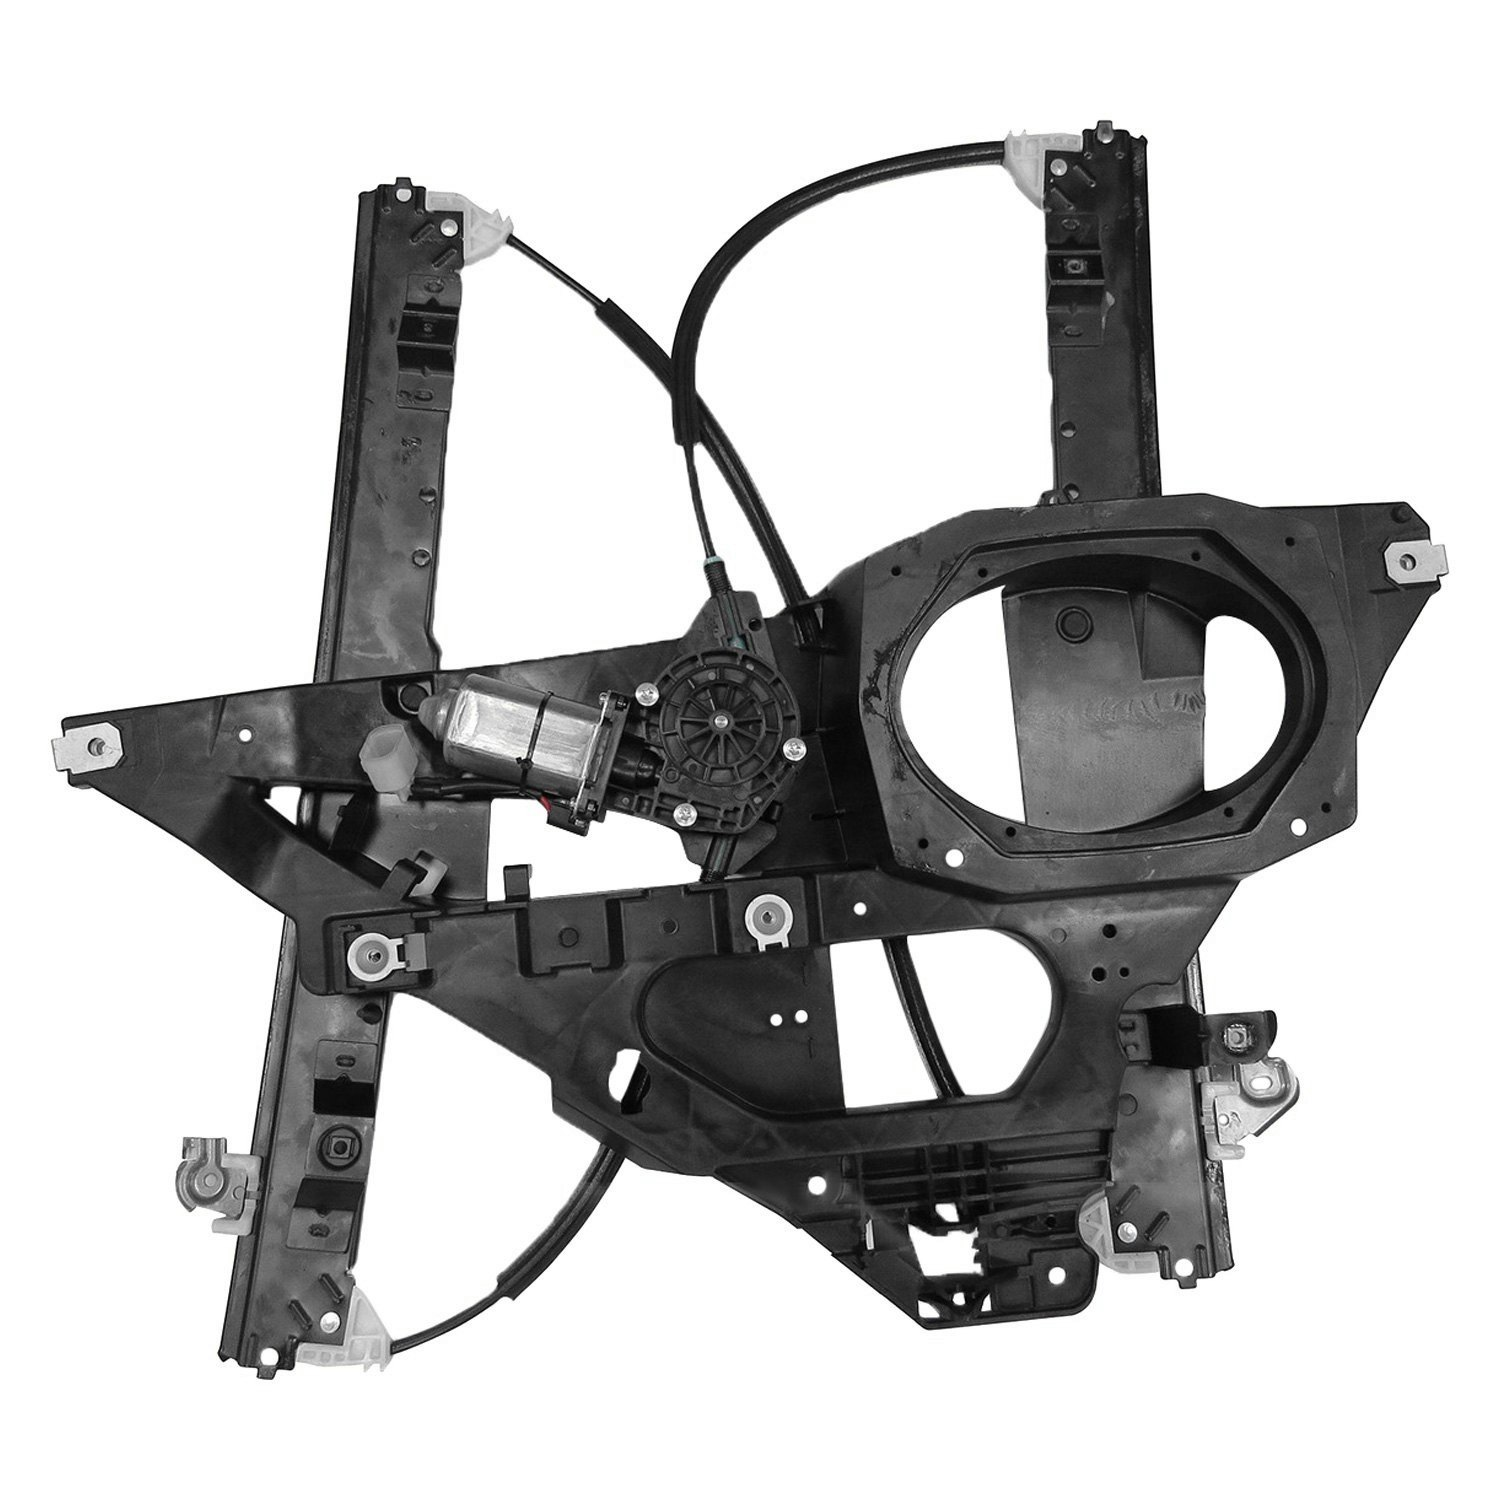 Ford expedition 03 06 window regulator and motor assembly for Window regulator and motor assembly